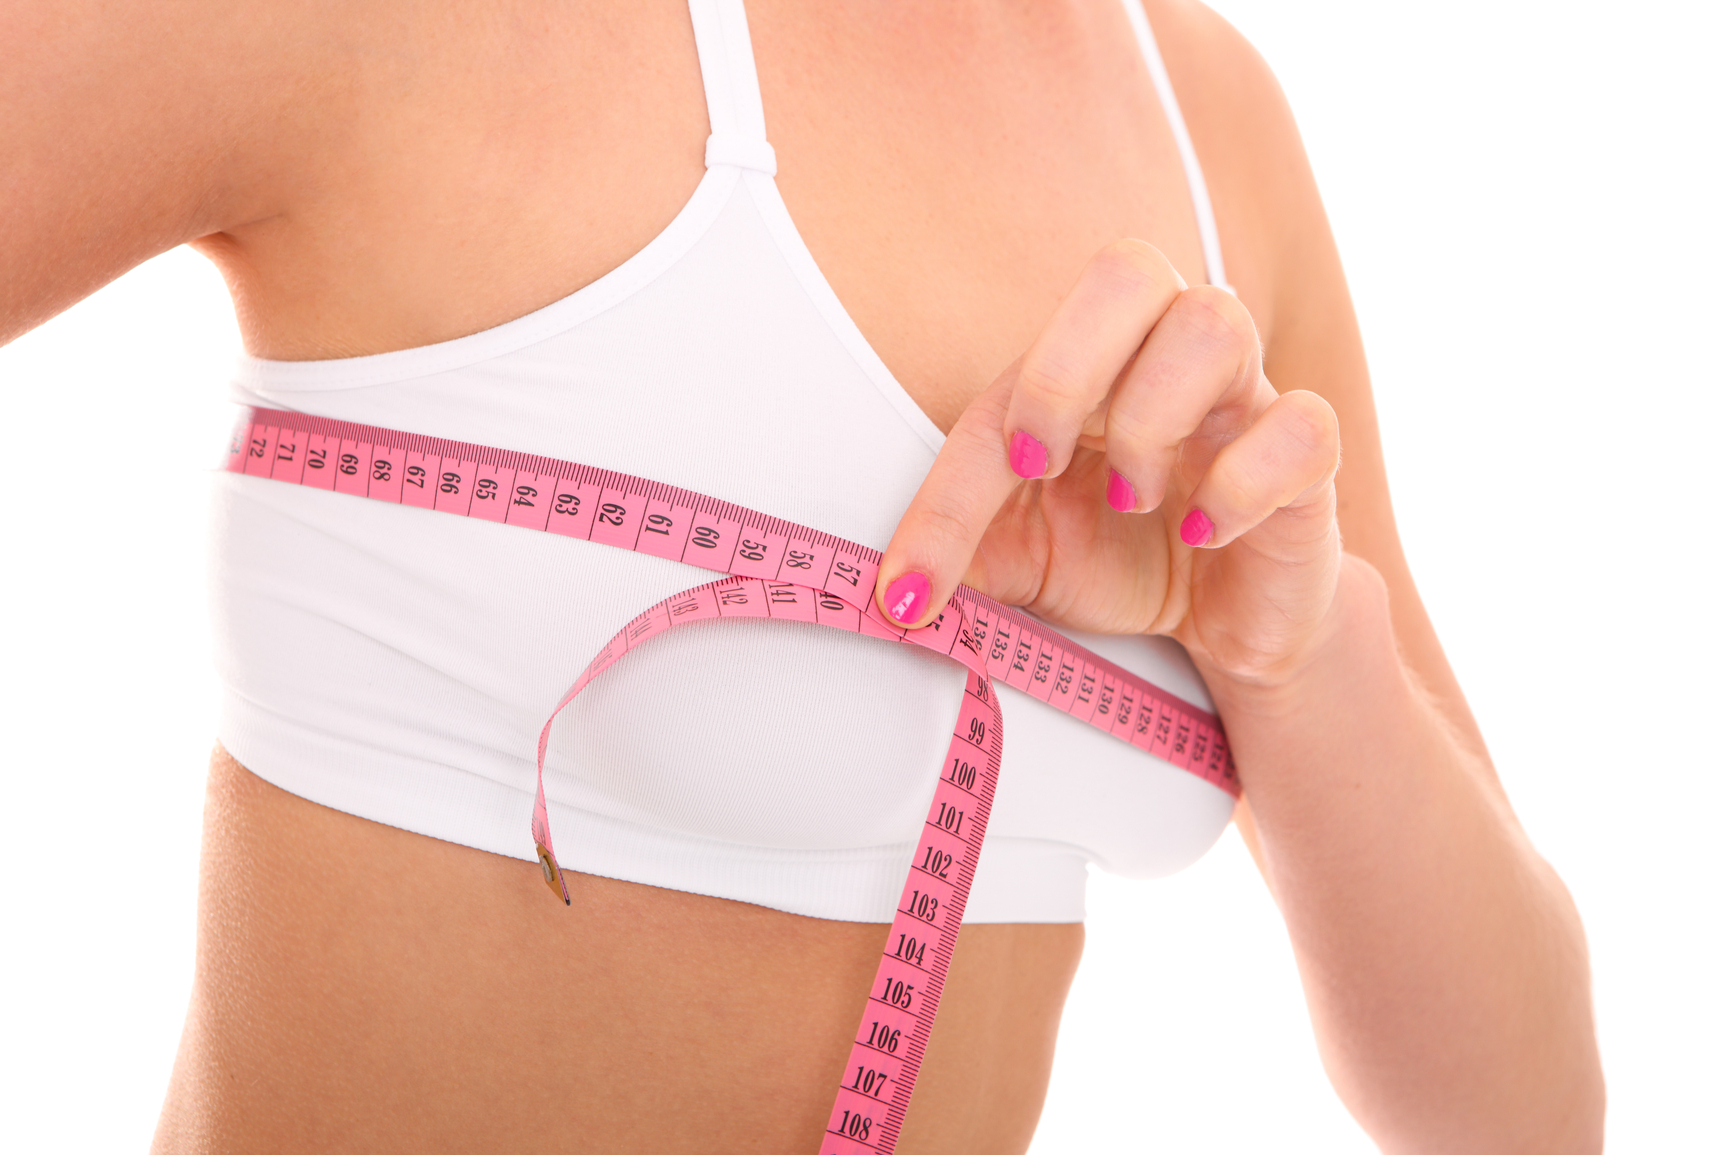 There is range of options that can help you increase your breast size without medical intervention.